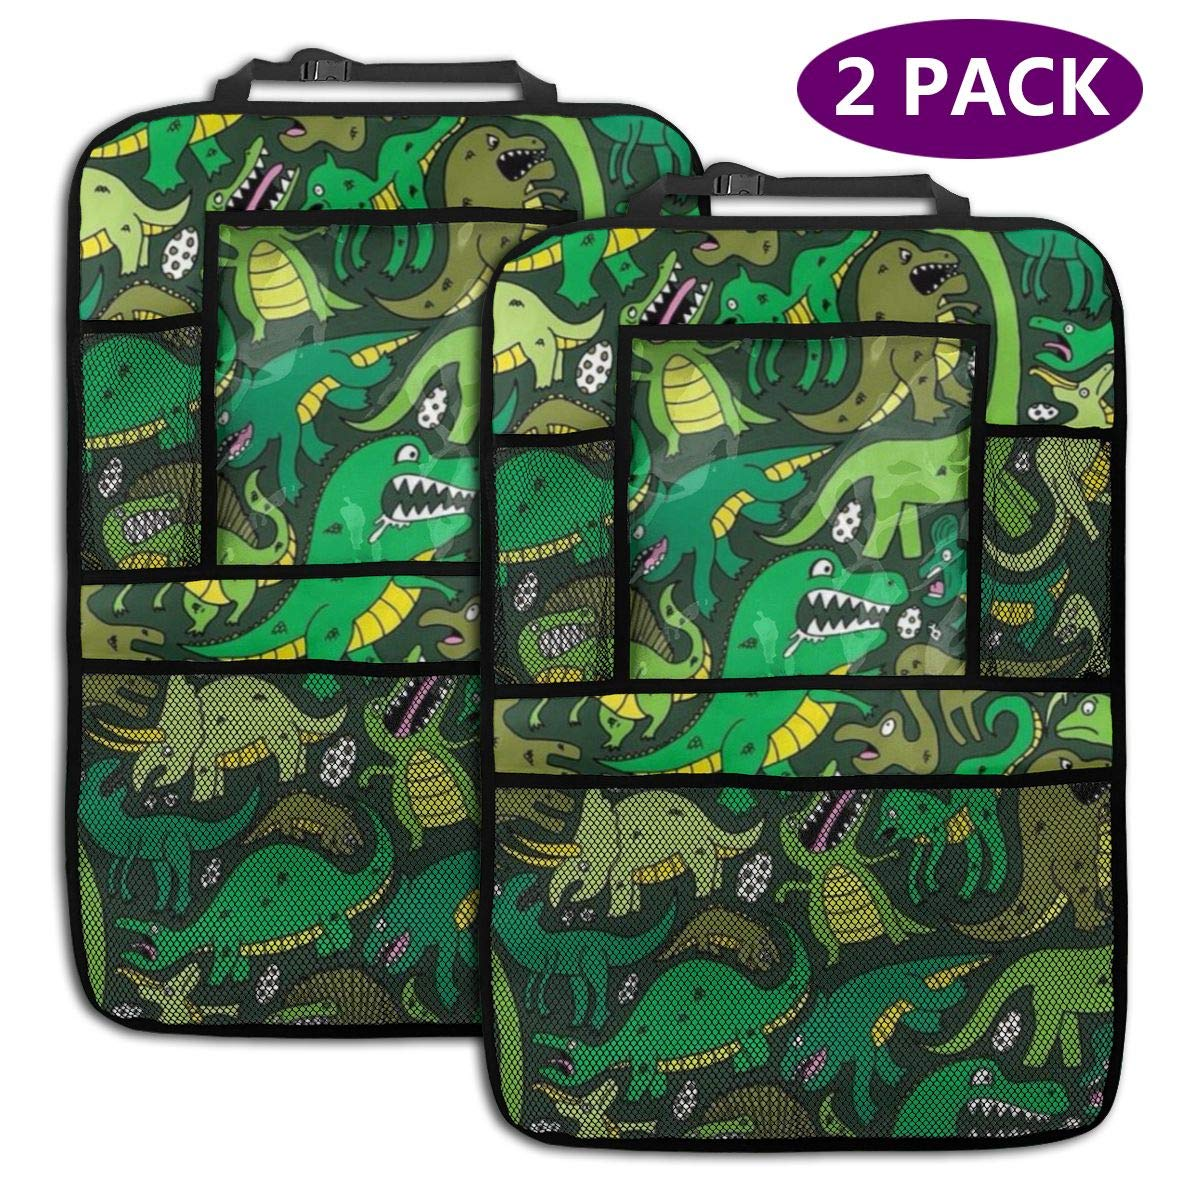 QF6FEICHAN Green Crocodile and Dinosaur Car Seat Back Protectors with Storage Pockets Kick Mats Accessories for Kids and Toddlers by QF6FEICHAN